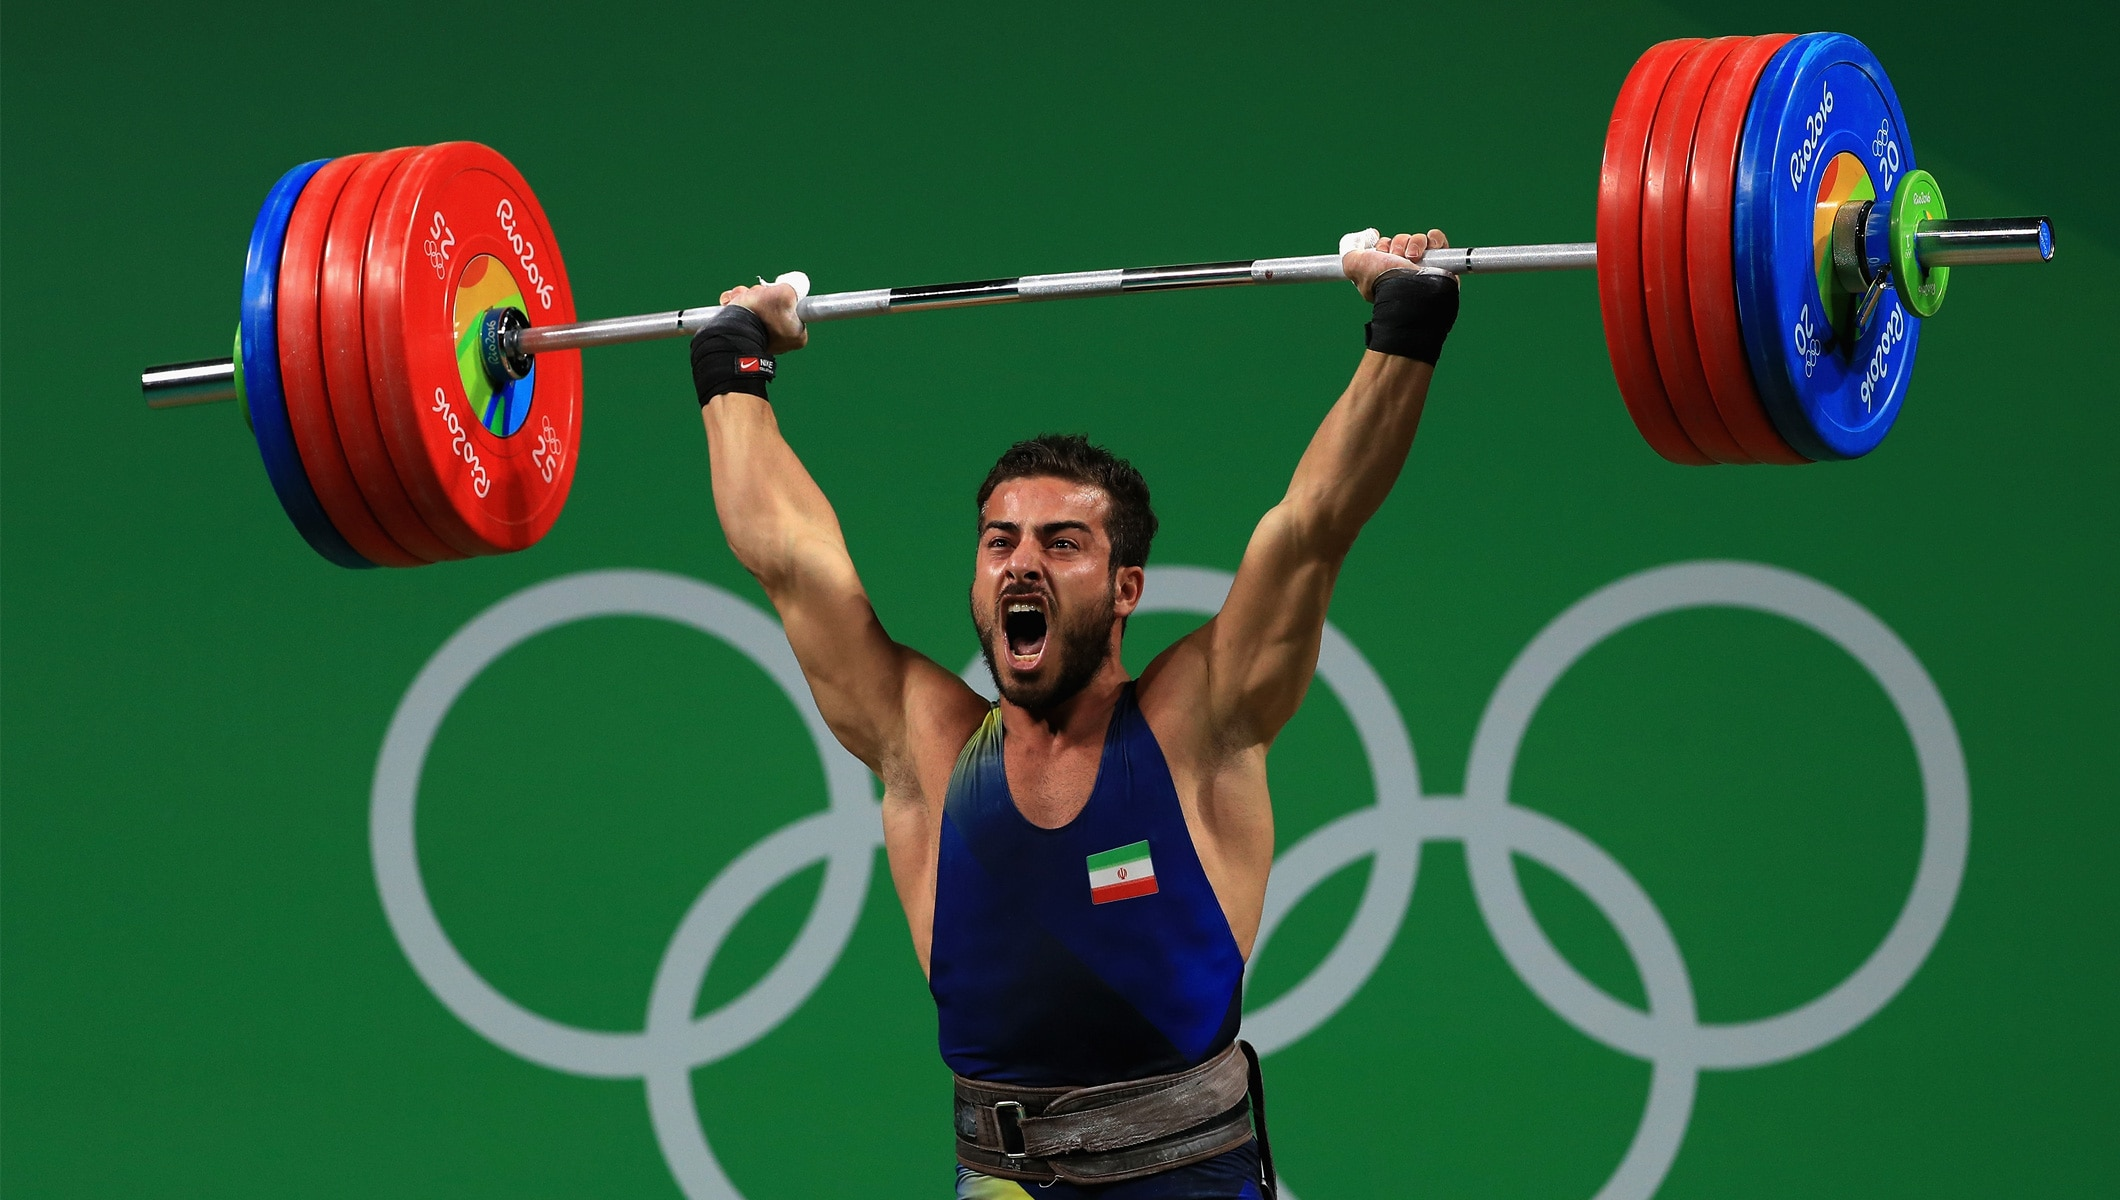 rostami breaks world record in 85kg weightlifting olympic news